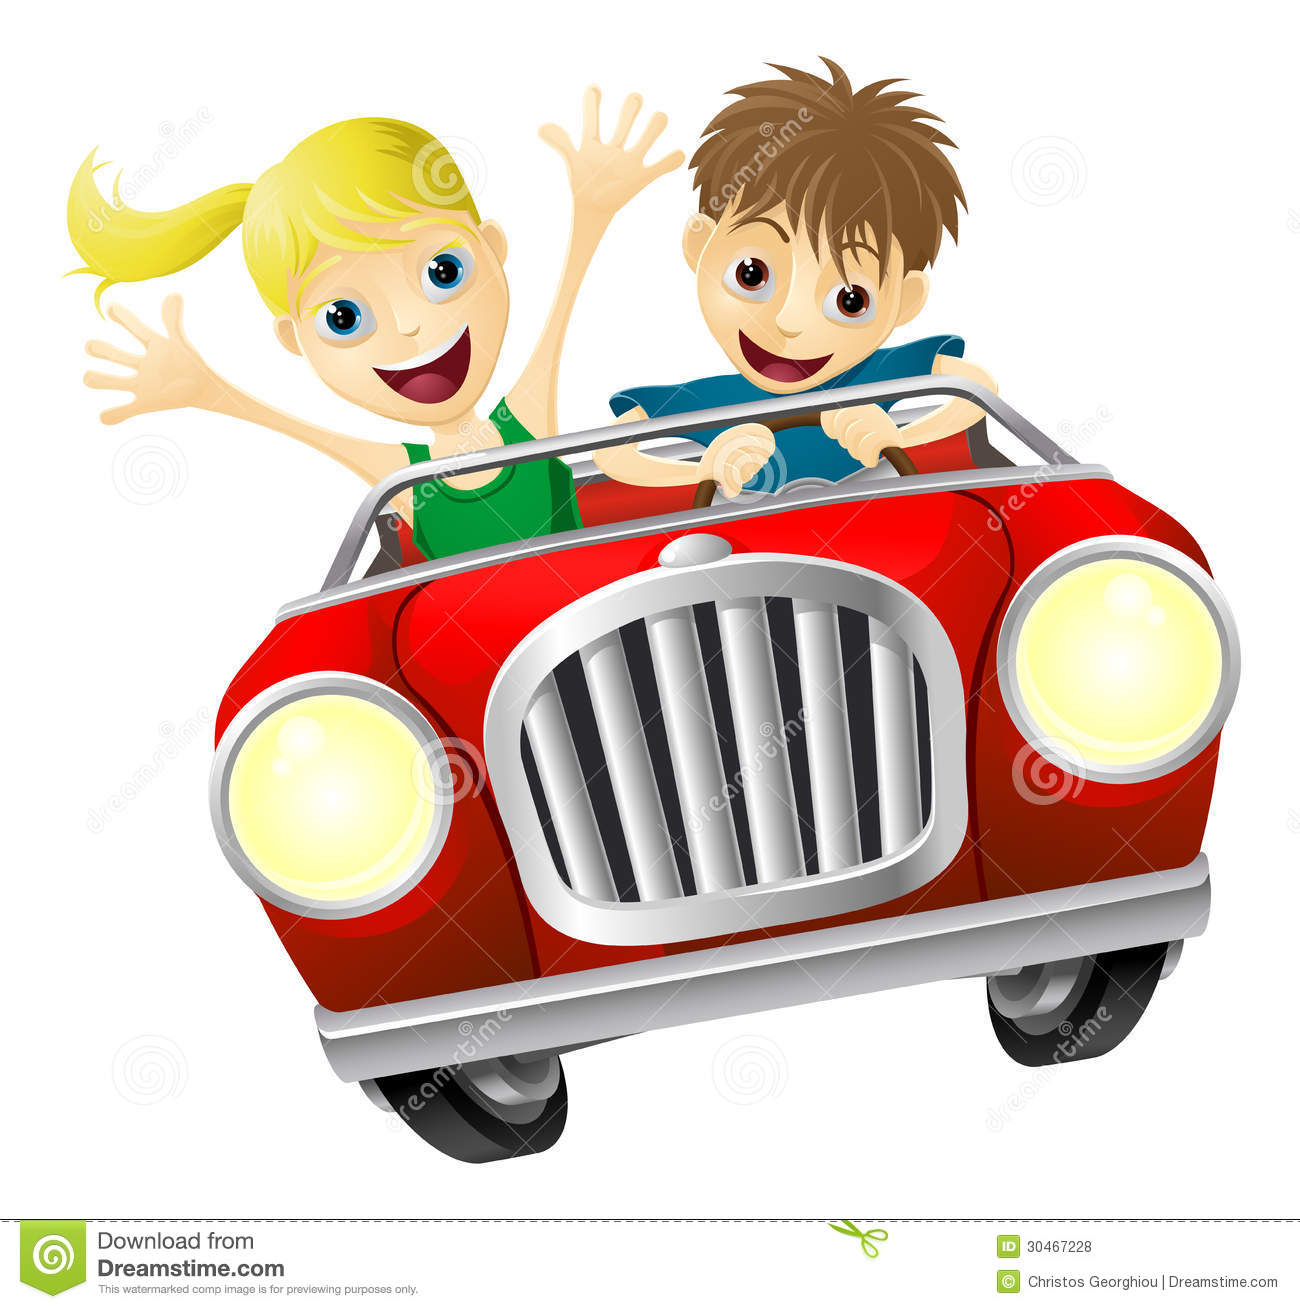 A man and a woman in a car clipart svg black and white download A man and a woman in a car clipart - ClipartFest svg black and white download